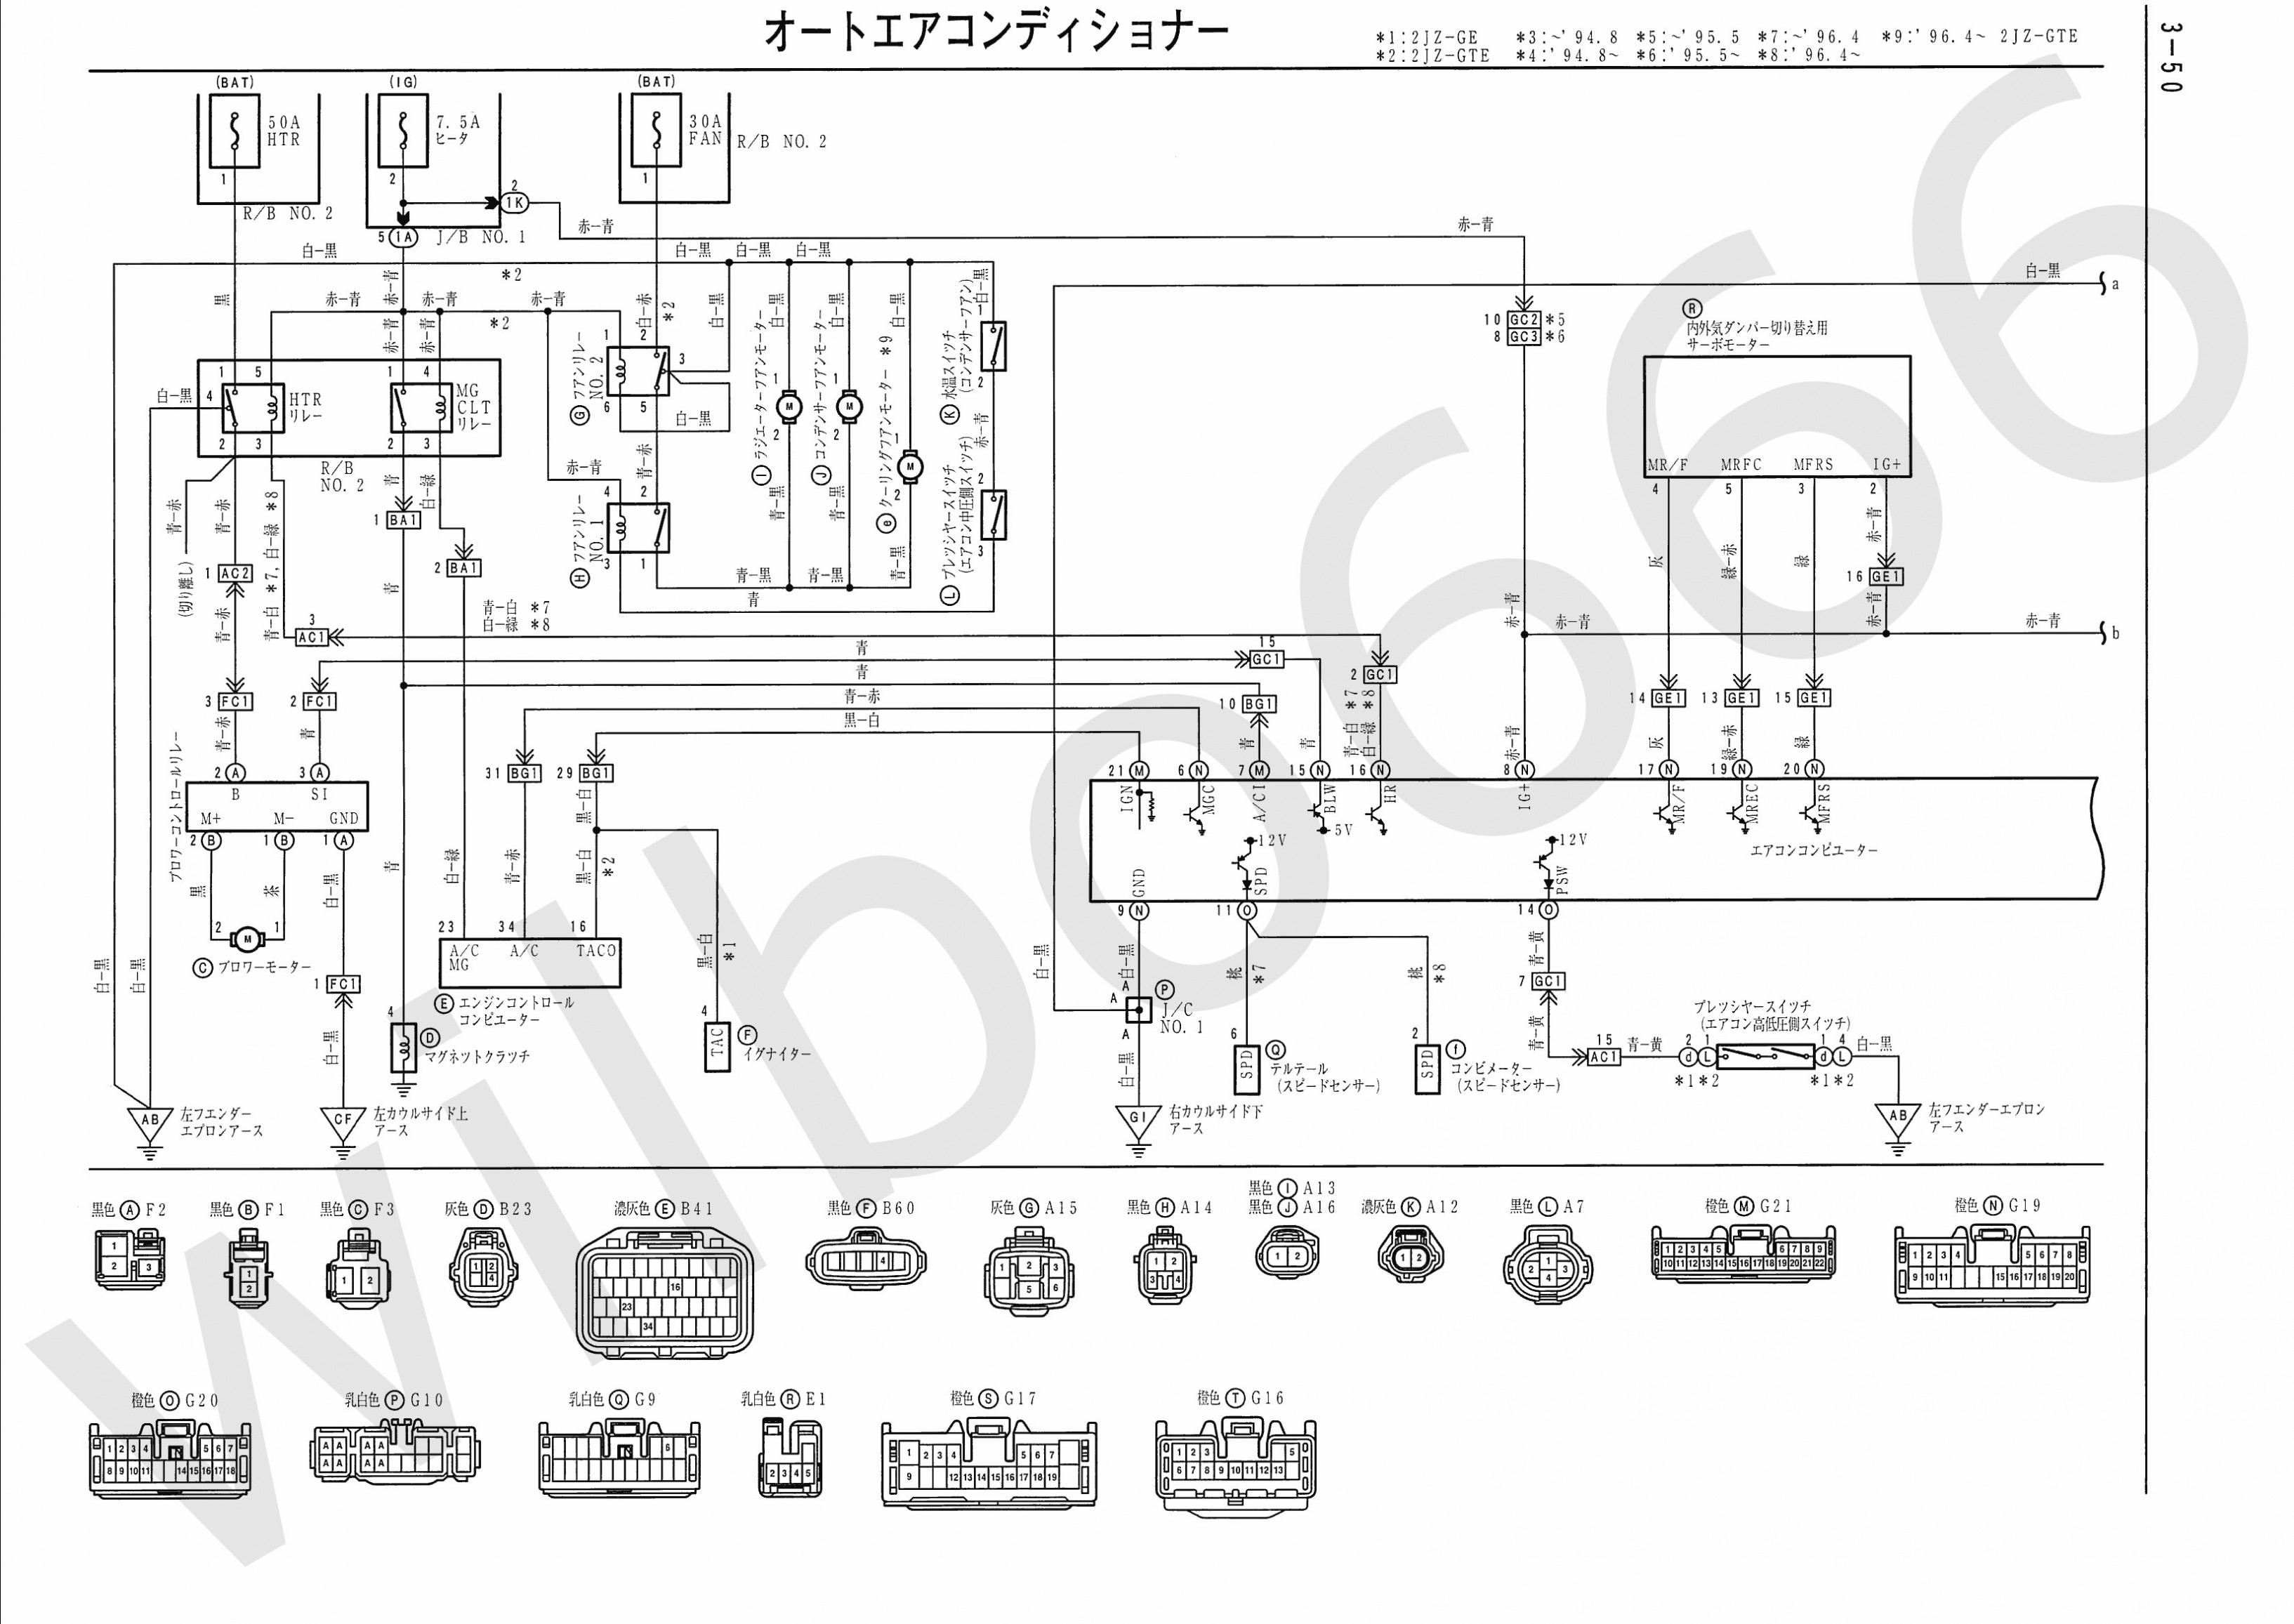 1999 Honda Accord V6 Engine Diagram 1998 Civic Engine Diagram Layout Wiring Diagrams • Of 1999 Honda Accord V6 Engine Diagram 2003 Honda Accord Transmission Problems 4carpictures